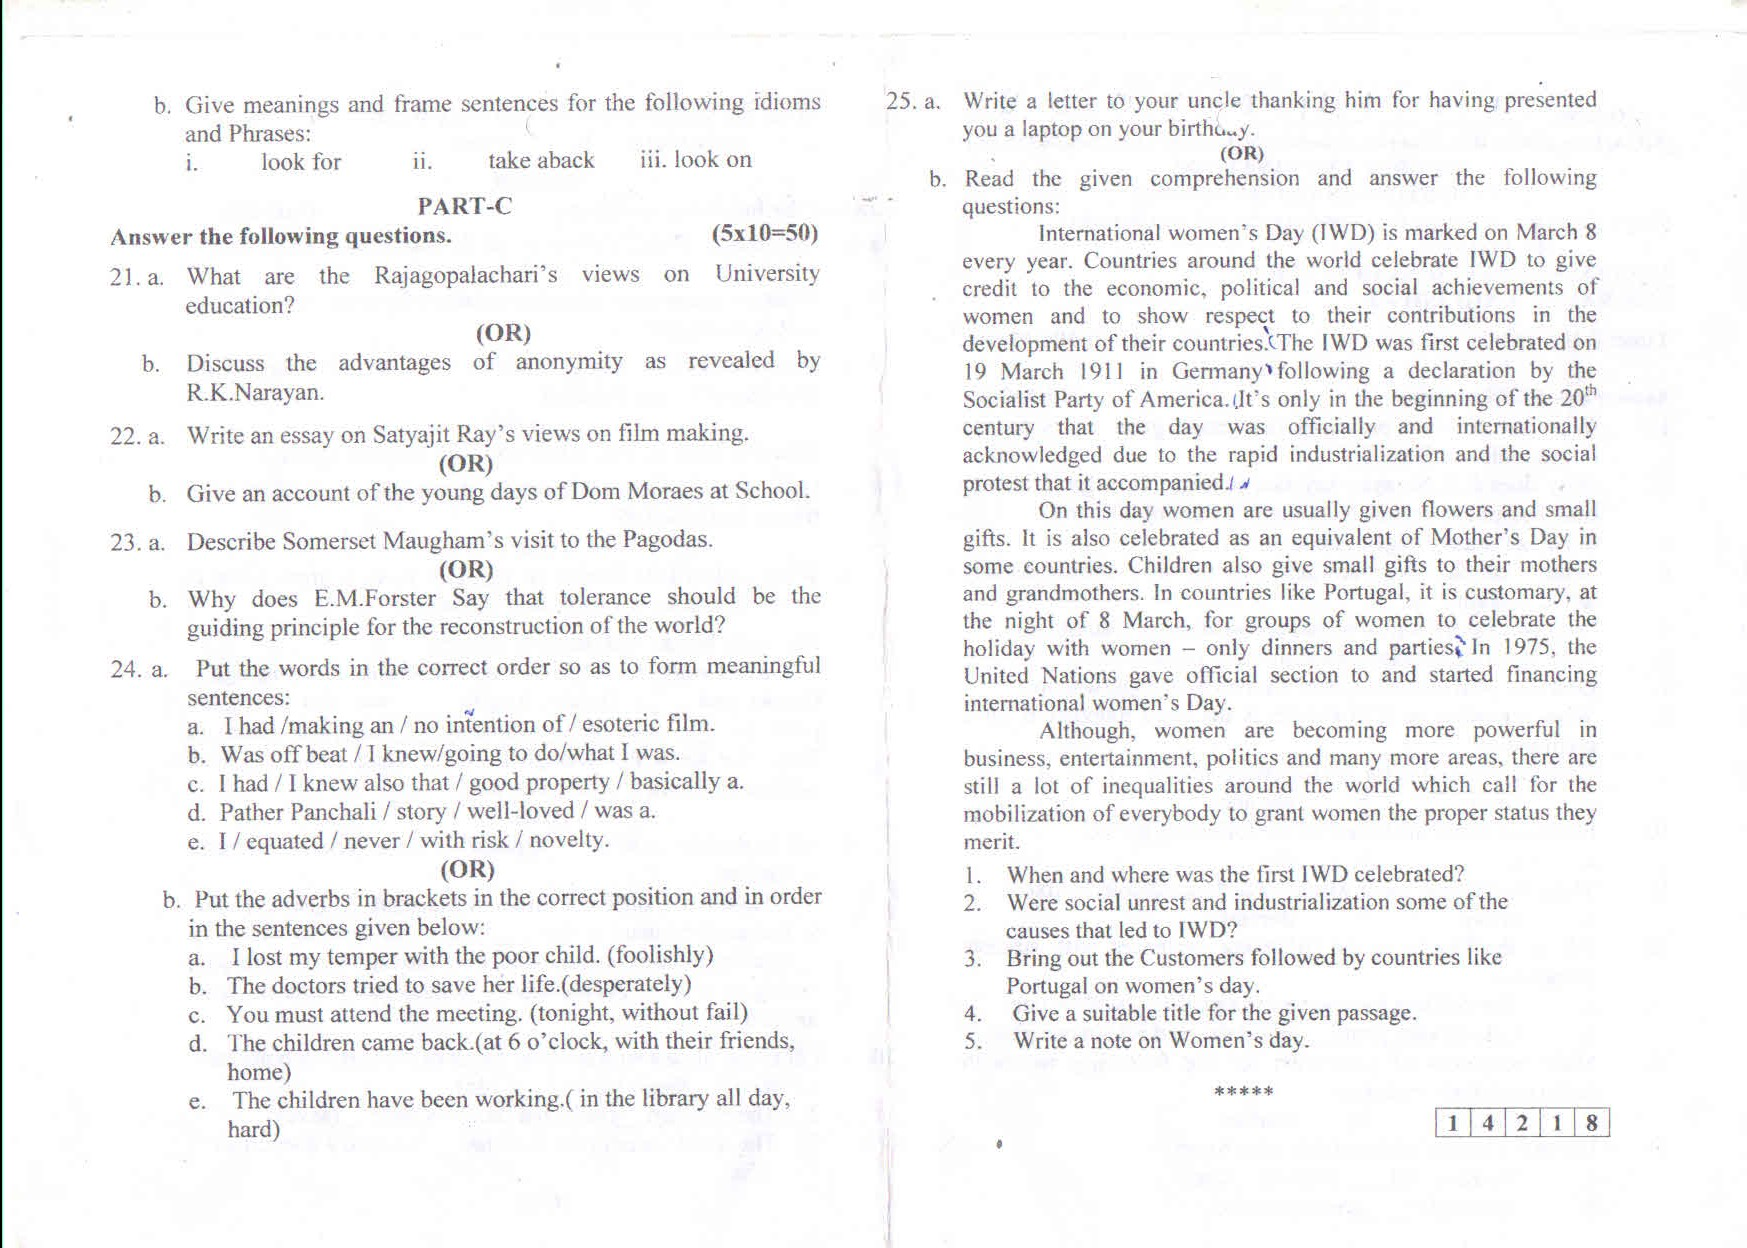 sri chandrasekharendra saraswathi viswa mahavidyalaya university question paper 6